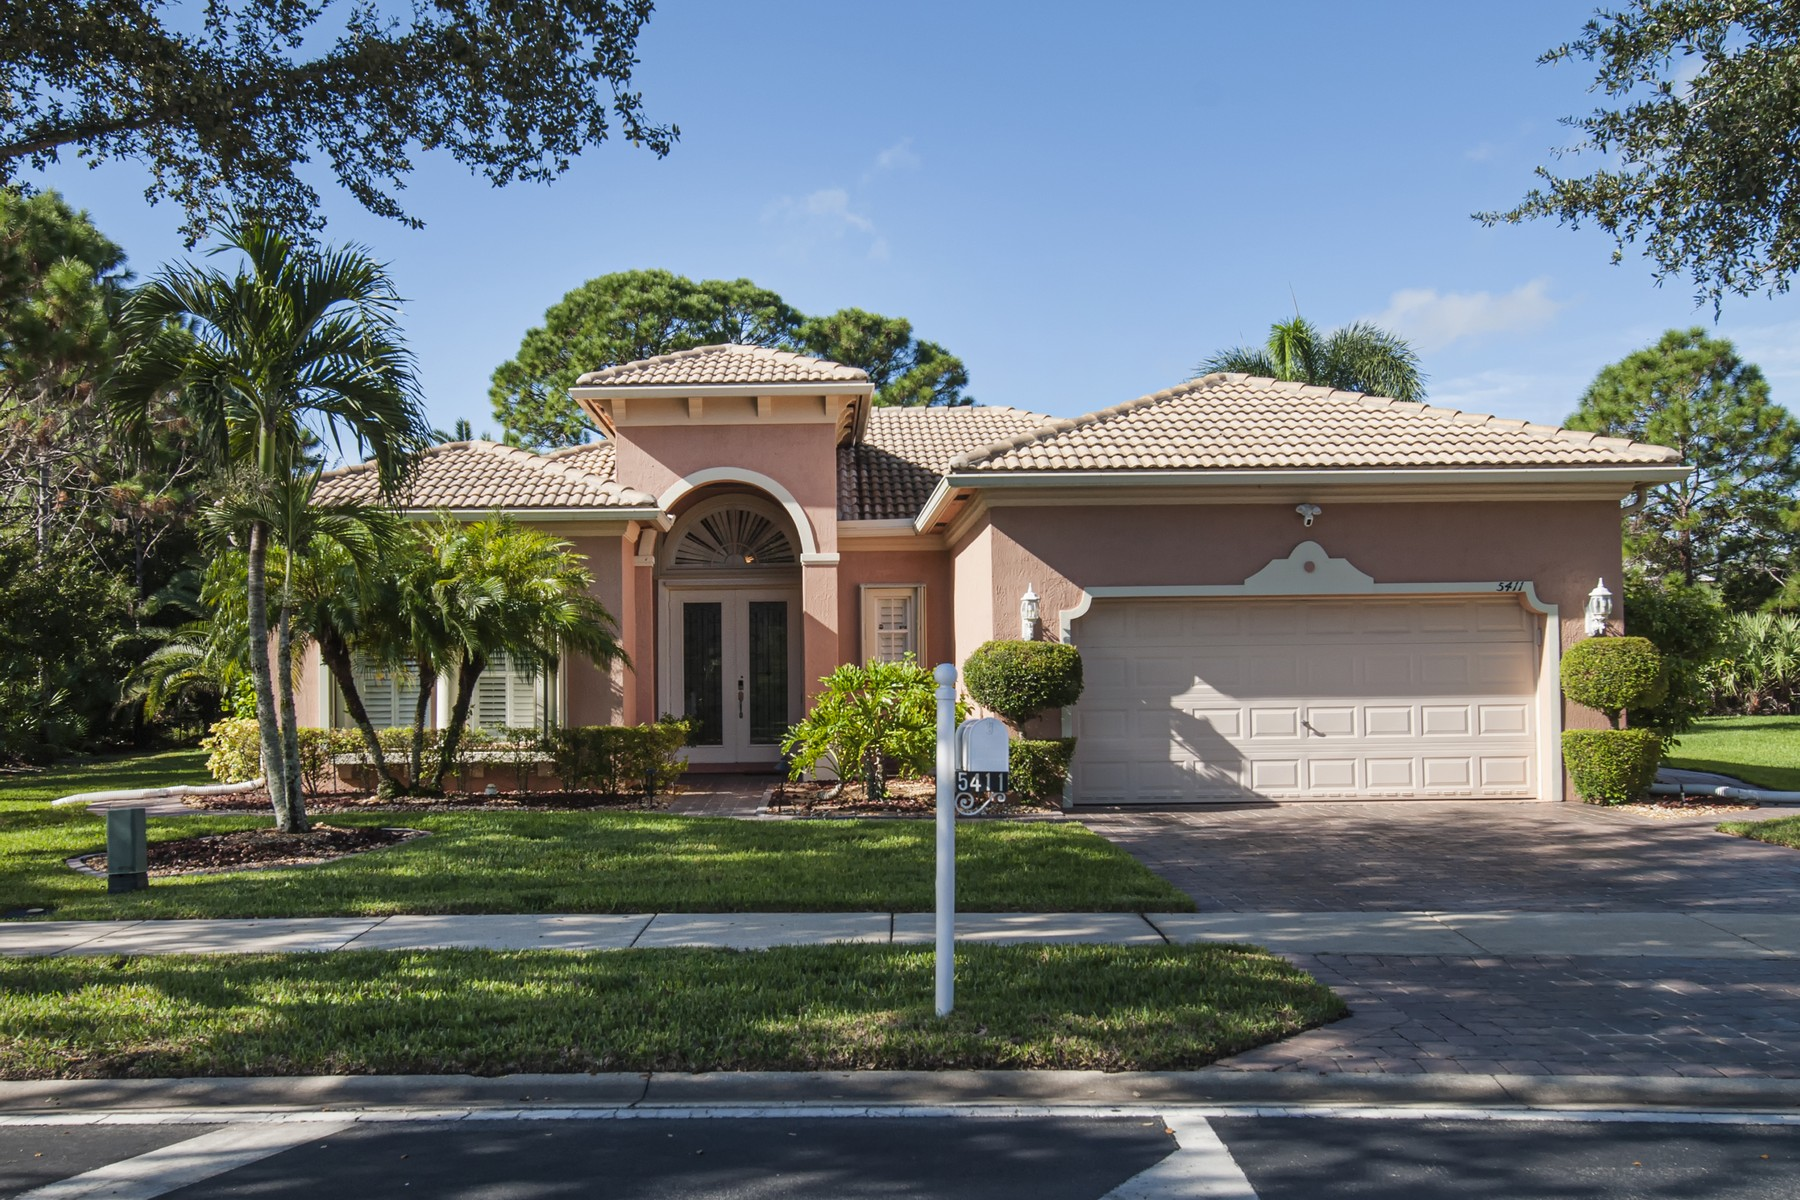 Property için Satış at Lakefront Home in Gated Community 5411 Place Lake Drive Fort Pierce, Florida 34951 Amerika Birleşik Devletleri